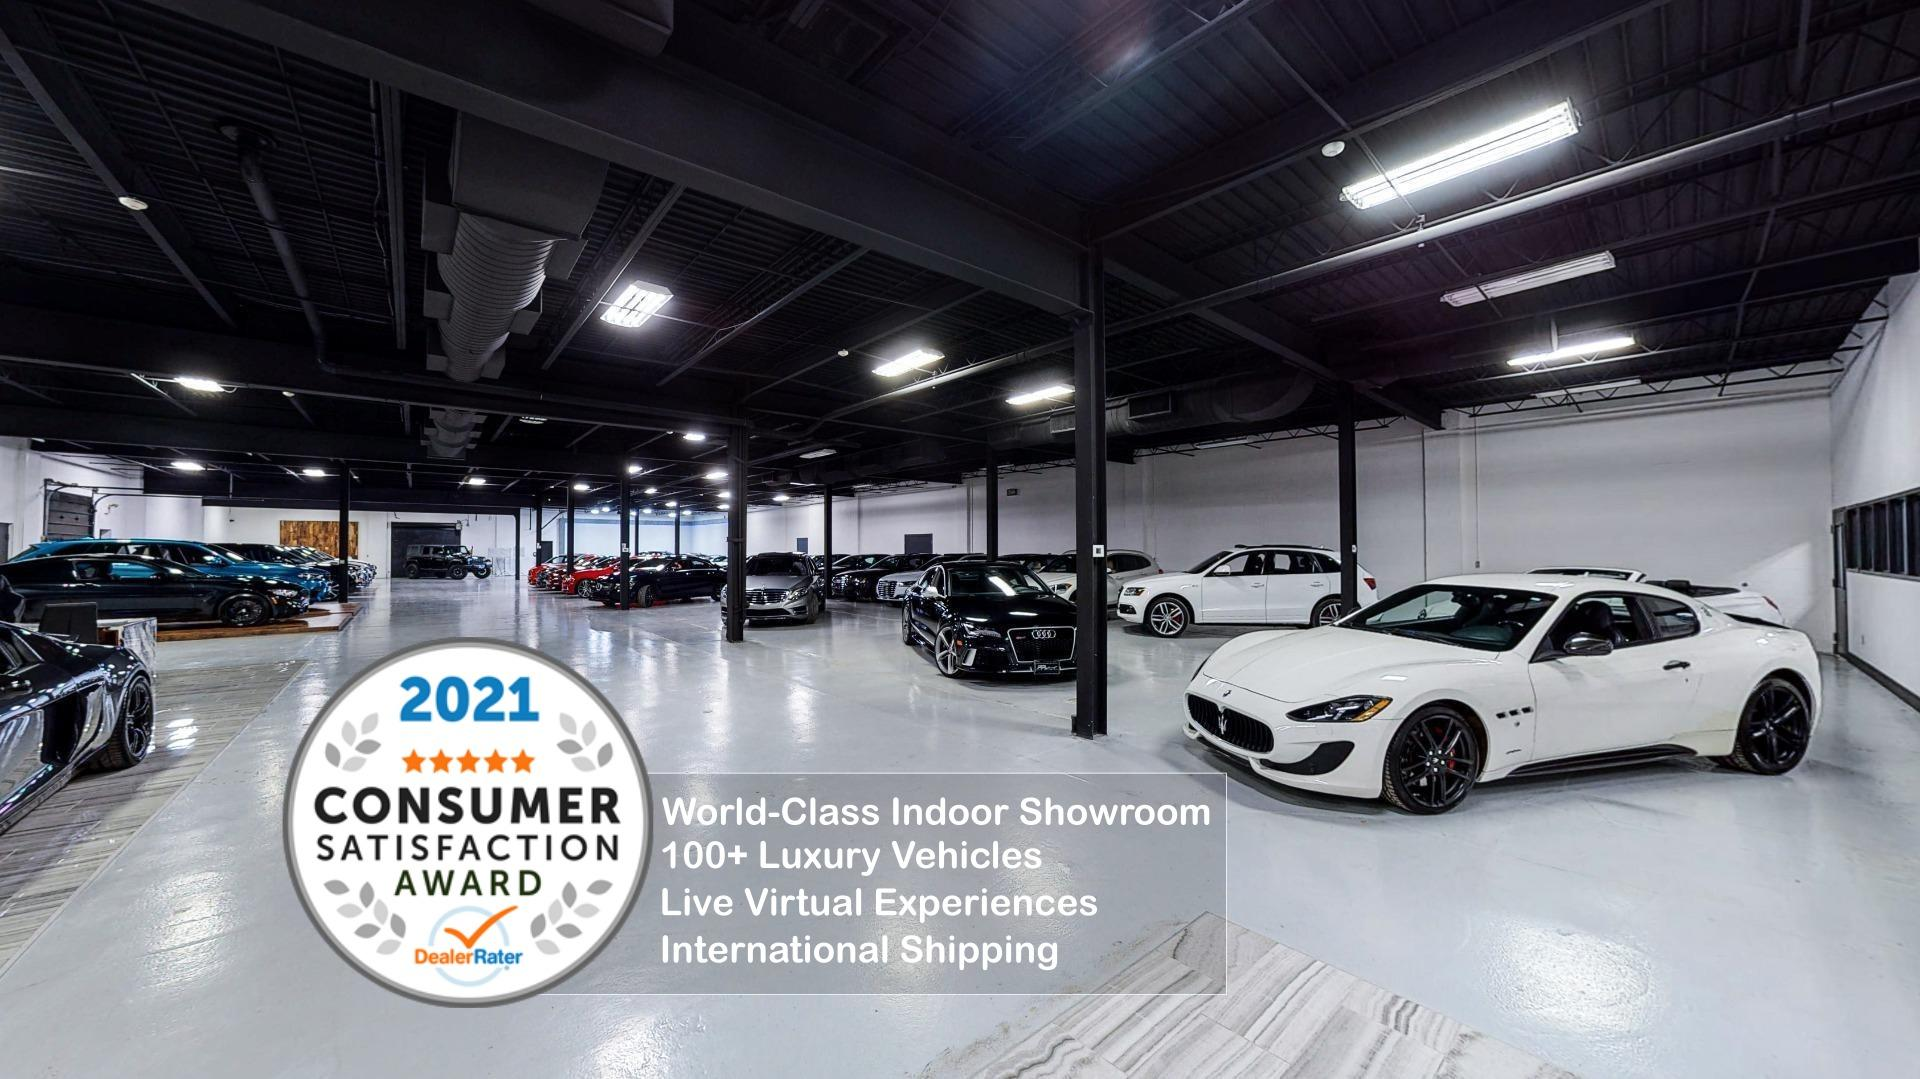 Used 2017 Land Rover Range Rover HSE for sale $64,995 at Perfect Auto Collection in Akron OH 44310 3